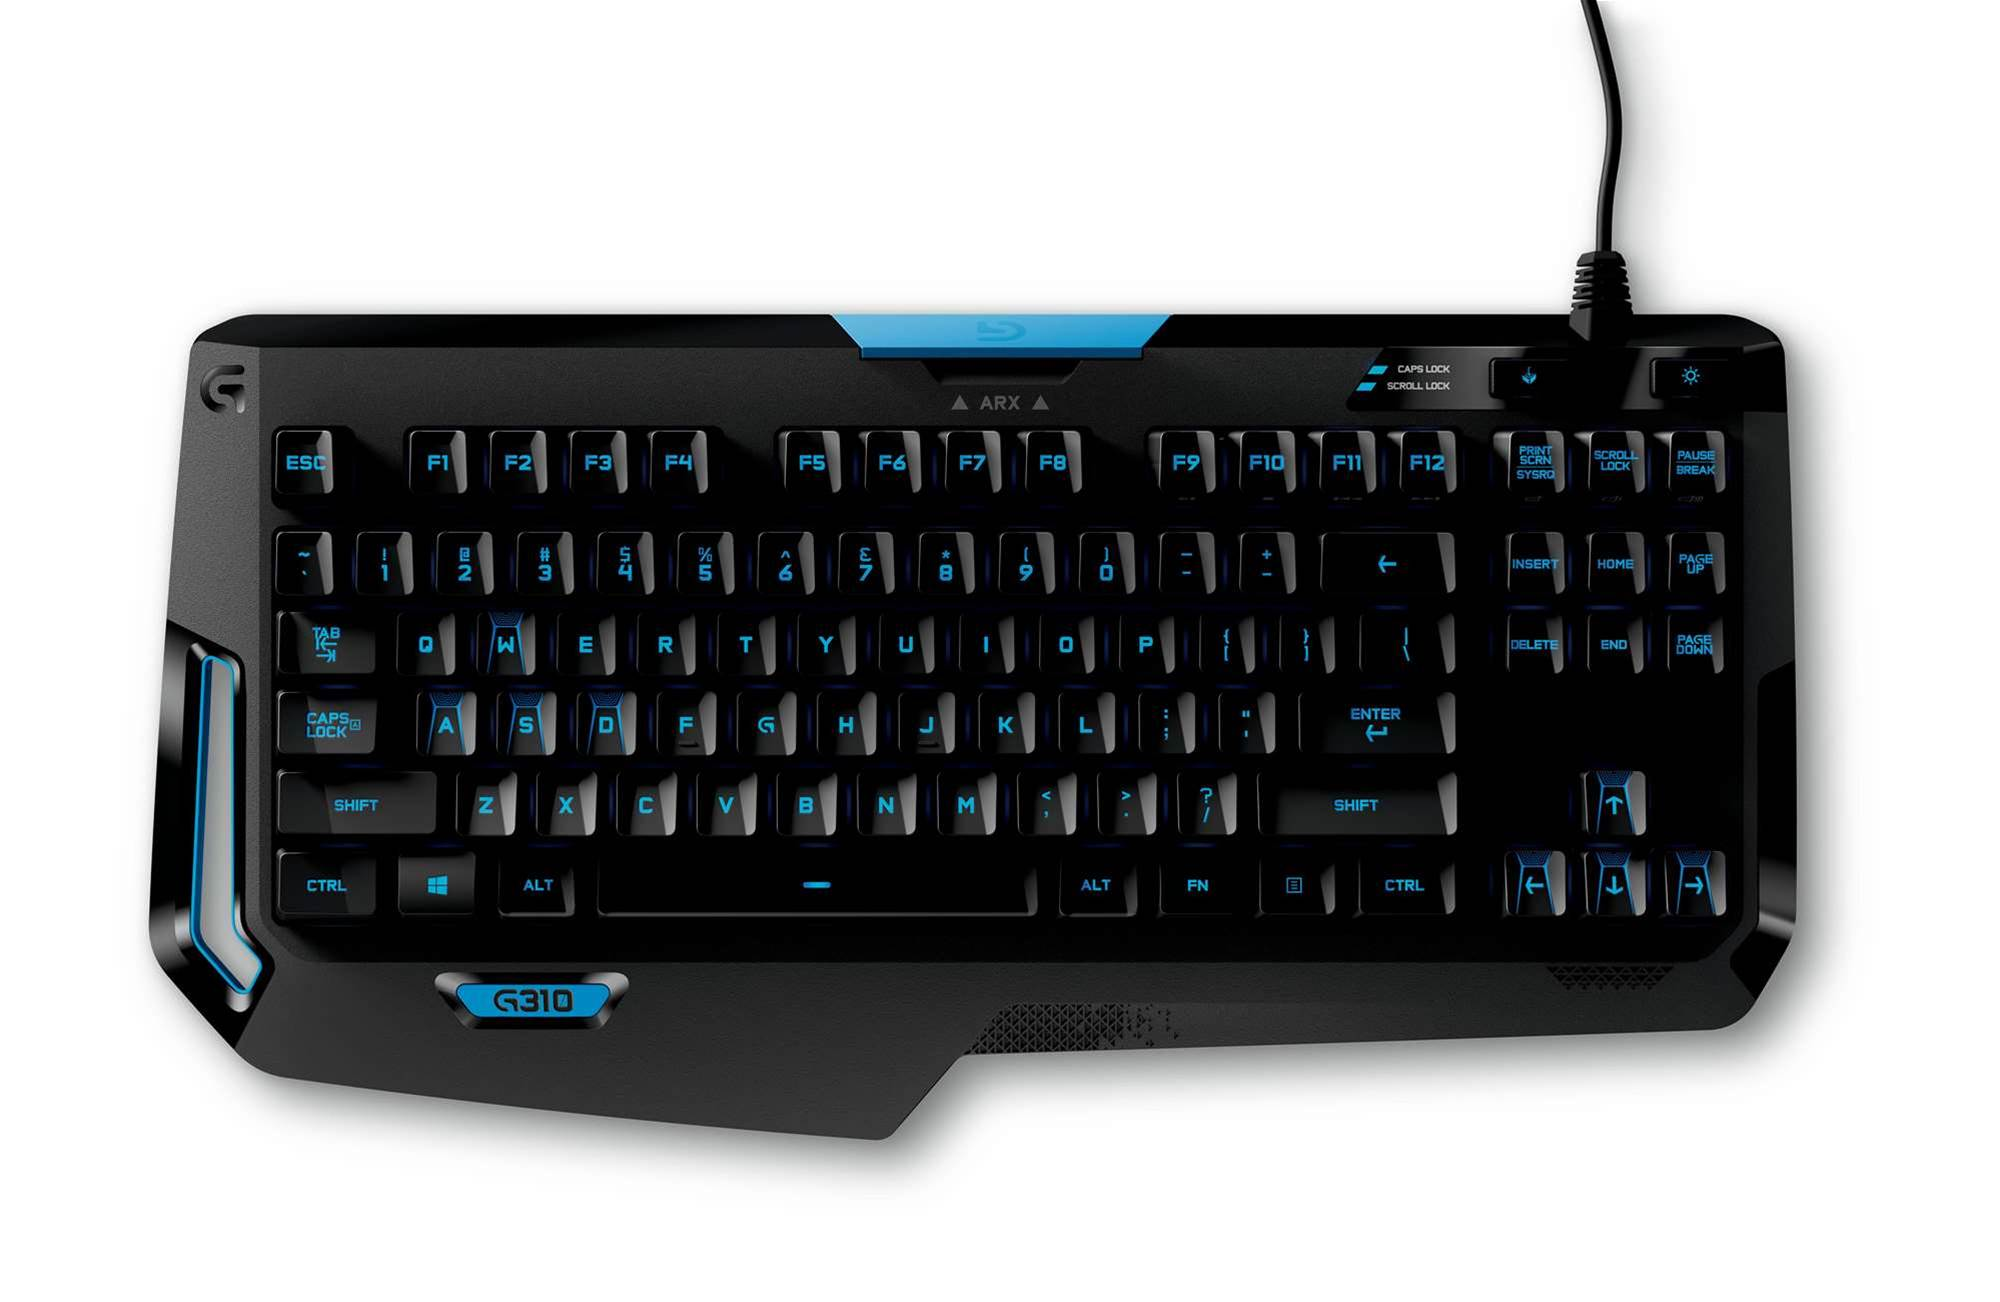 Win a Logitech G310 Atlas Dawn Keyboard